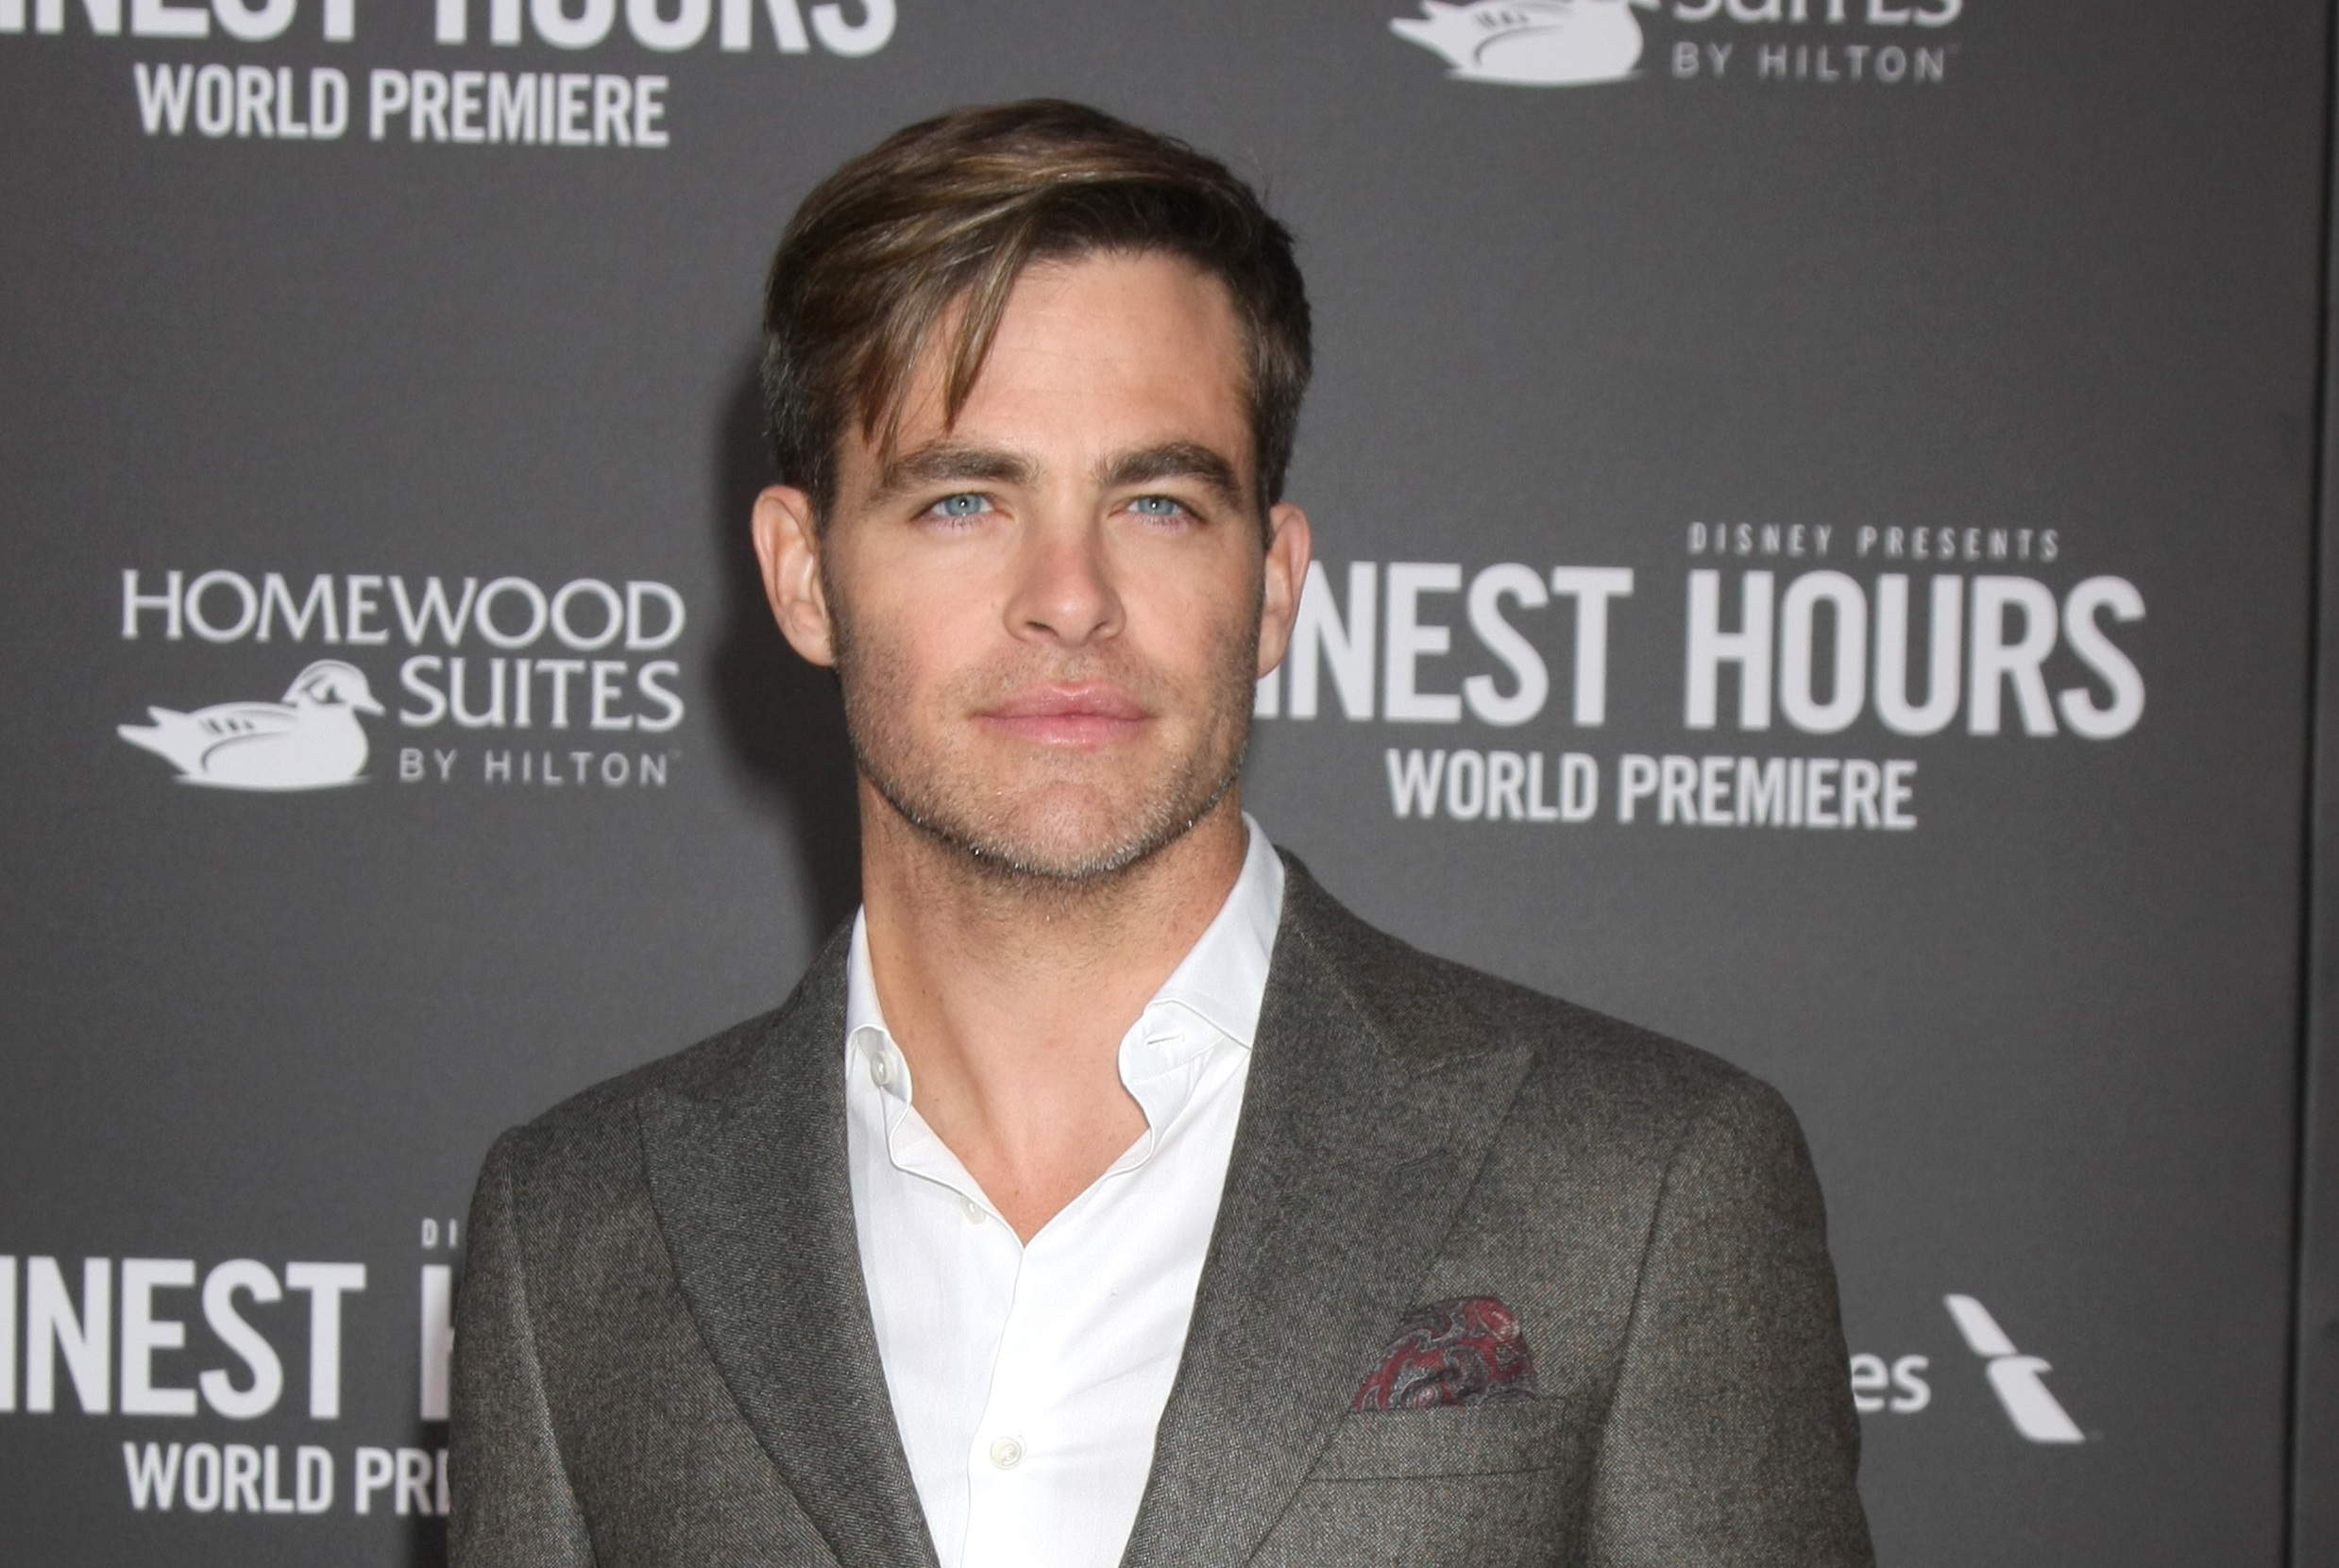 Chris Pine just said some super relatable things about anxiety